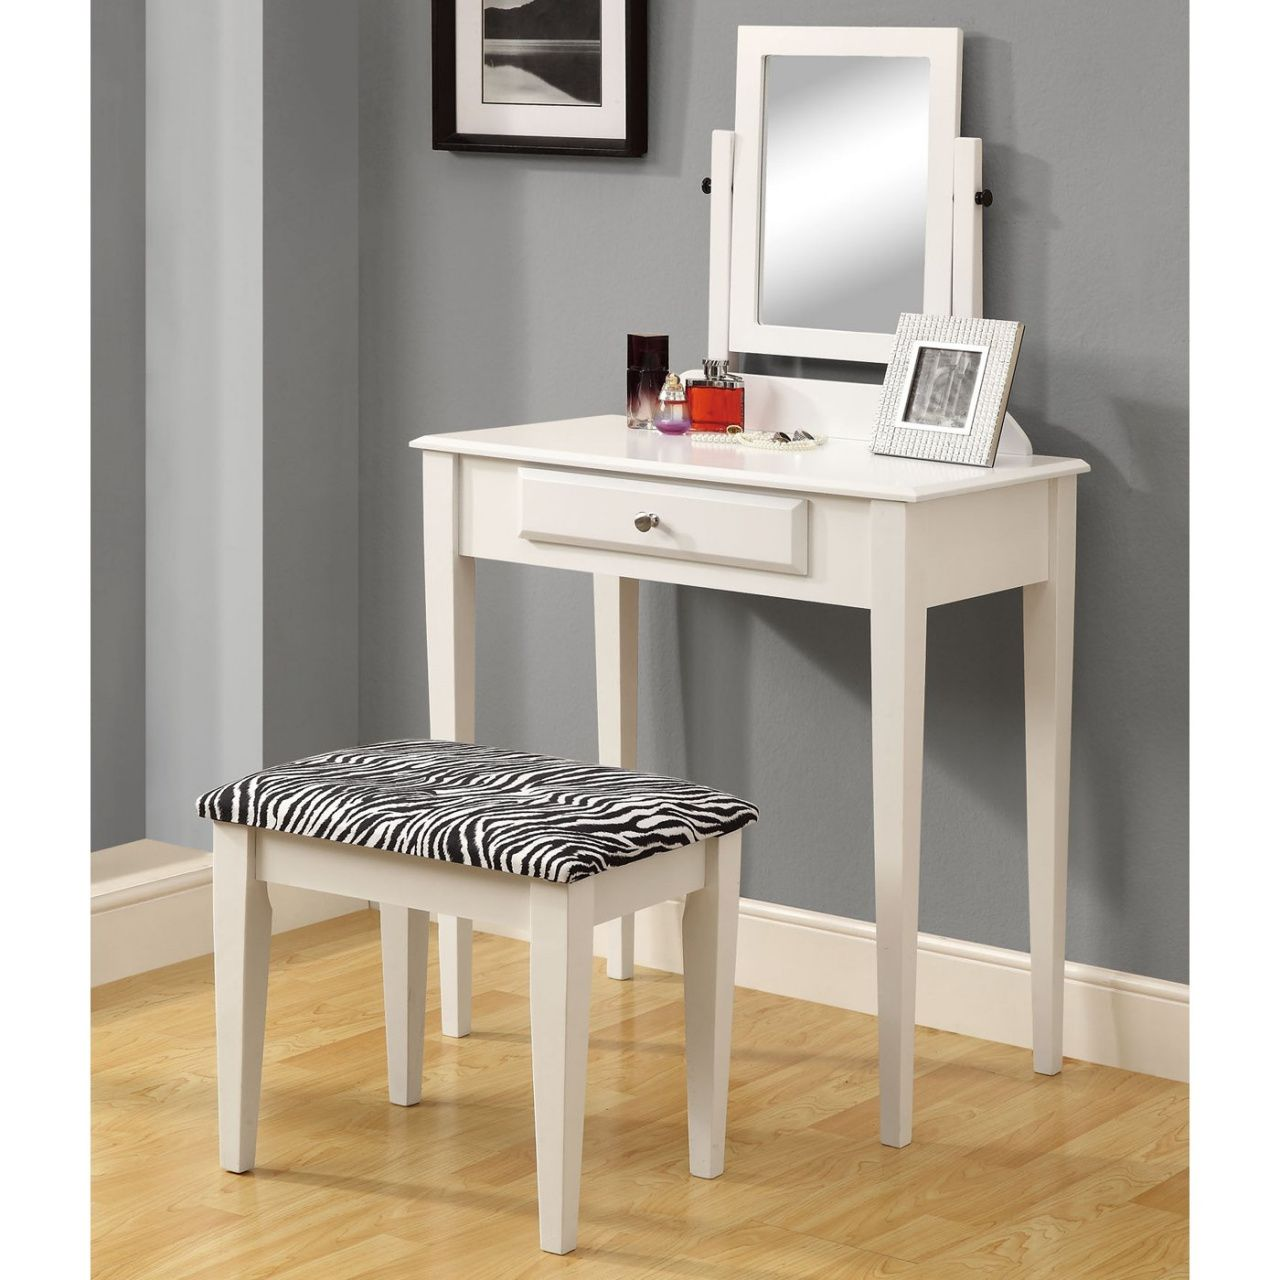 Great Tall Vanity Table   Best Home Office Furniture Check More At Http://www